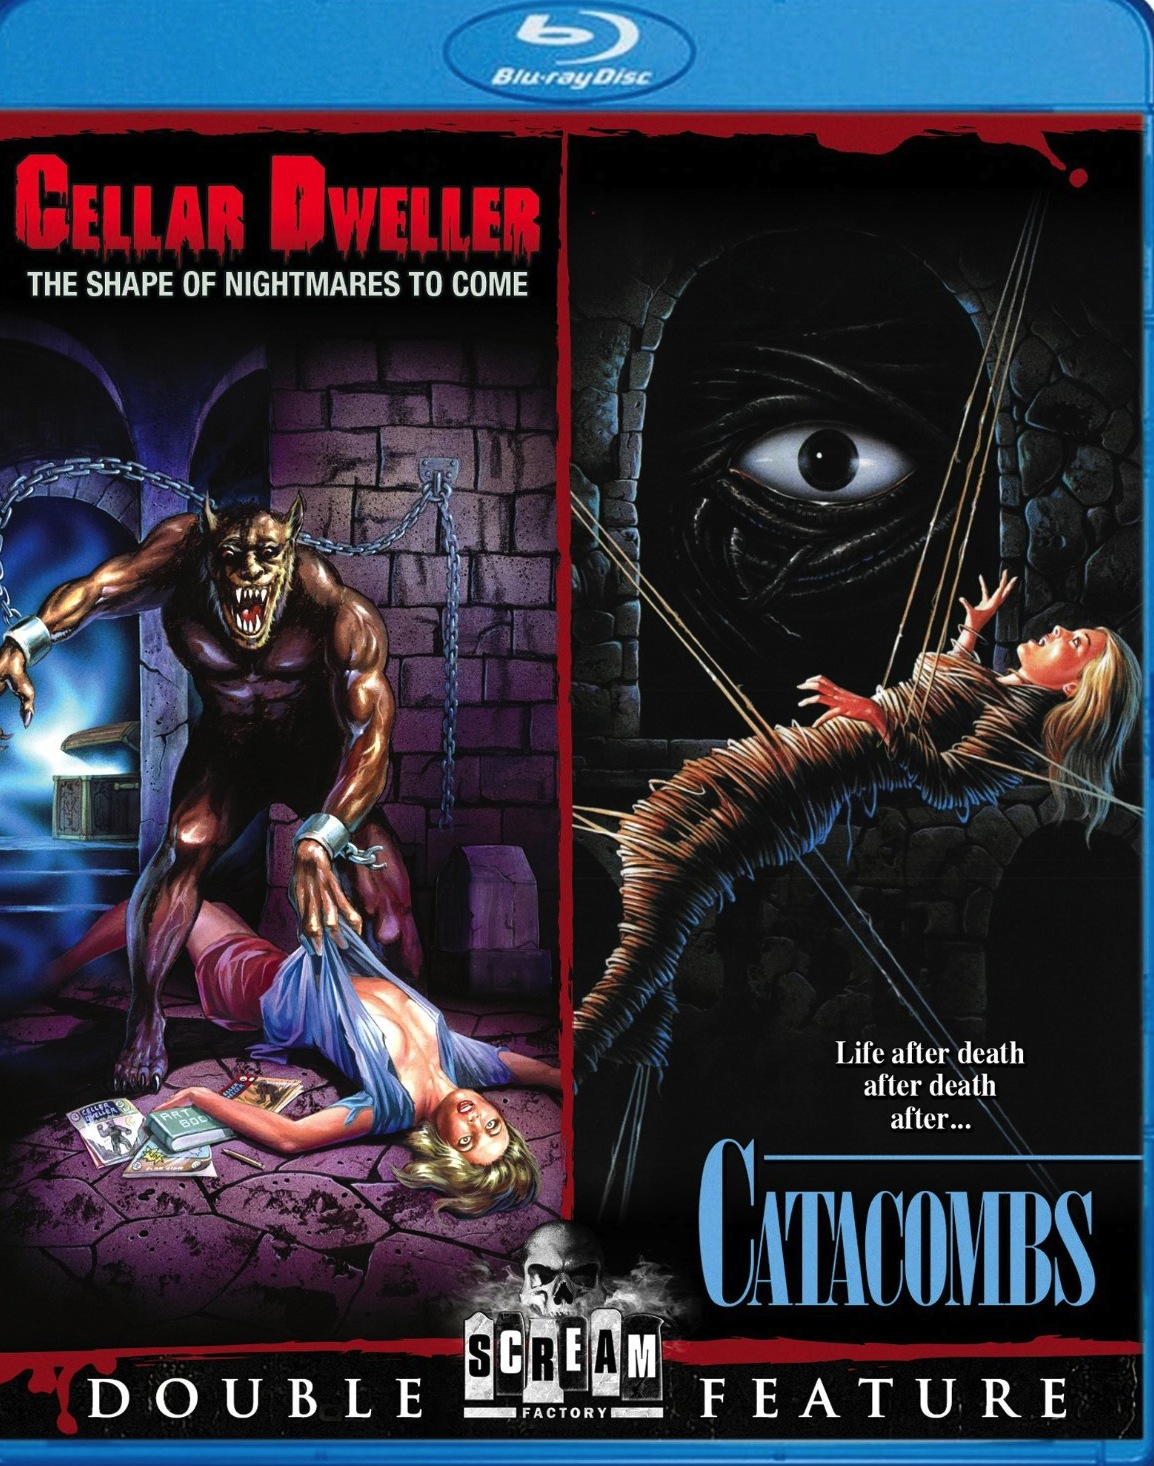 Cellar Dweller / Catacombs